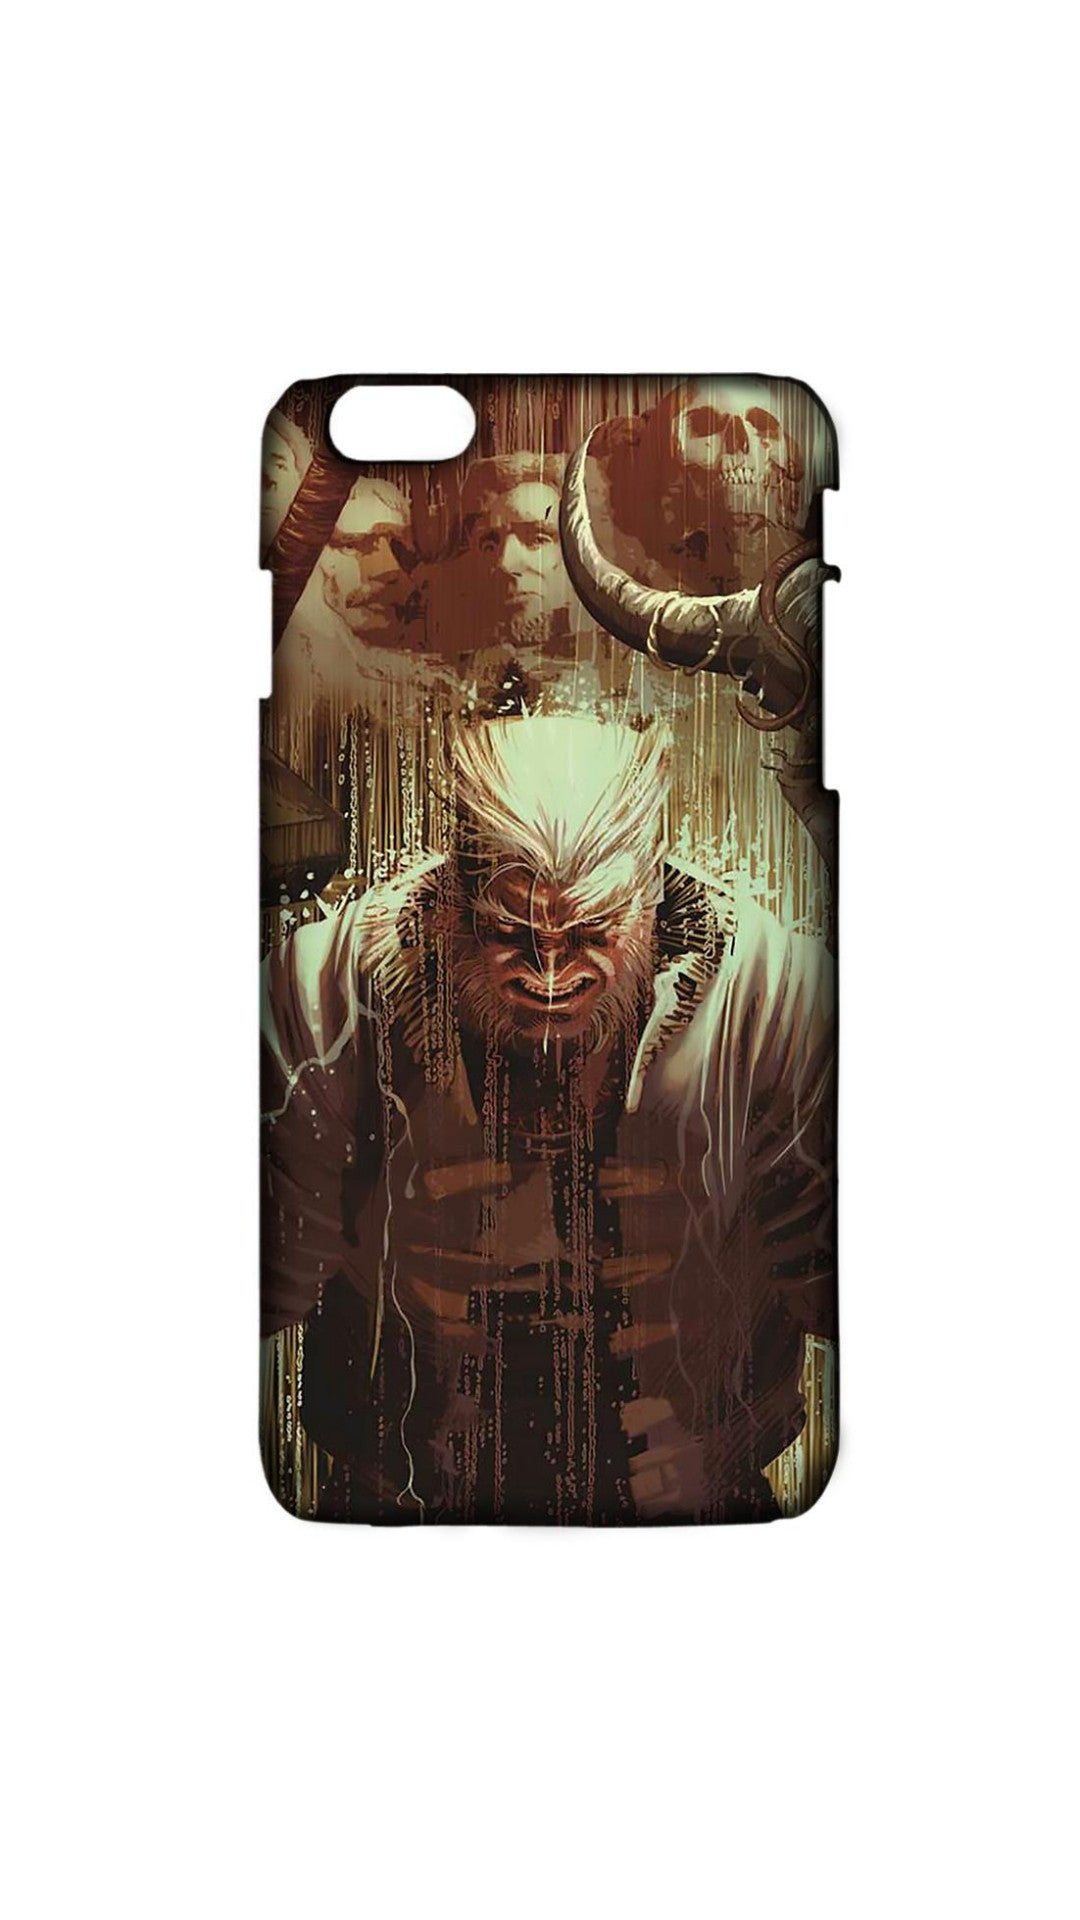 low priced 6c3c0 54d5d X-Men Mobile Cover/Case for iPhone 6 Plus - designermobilecovers